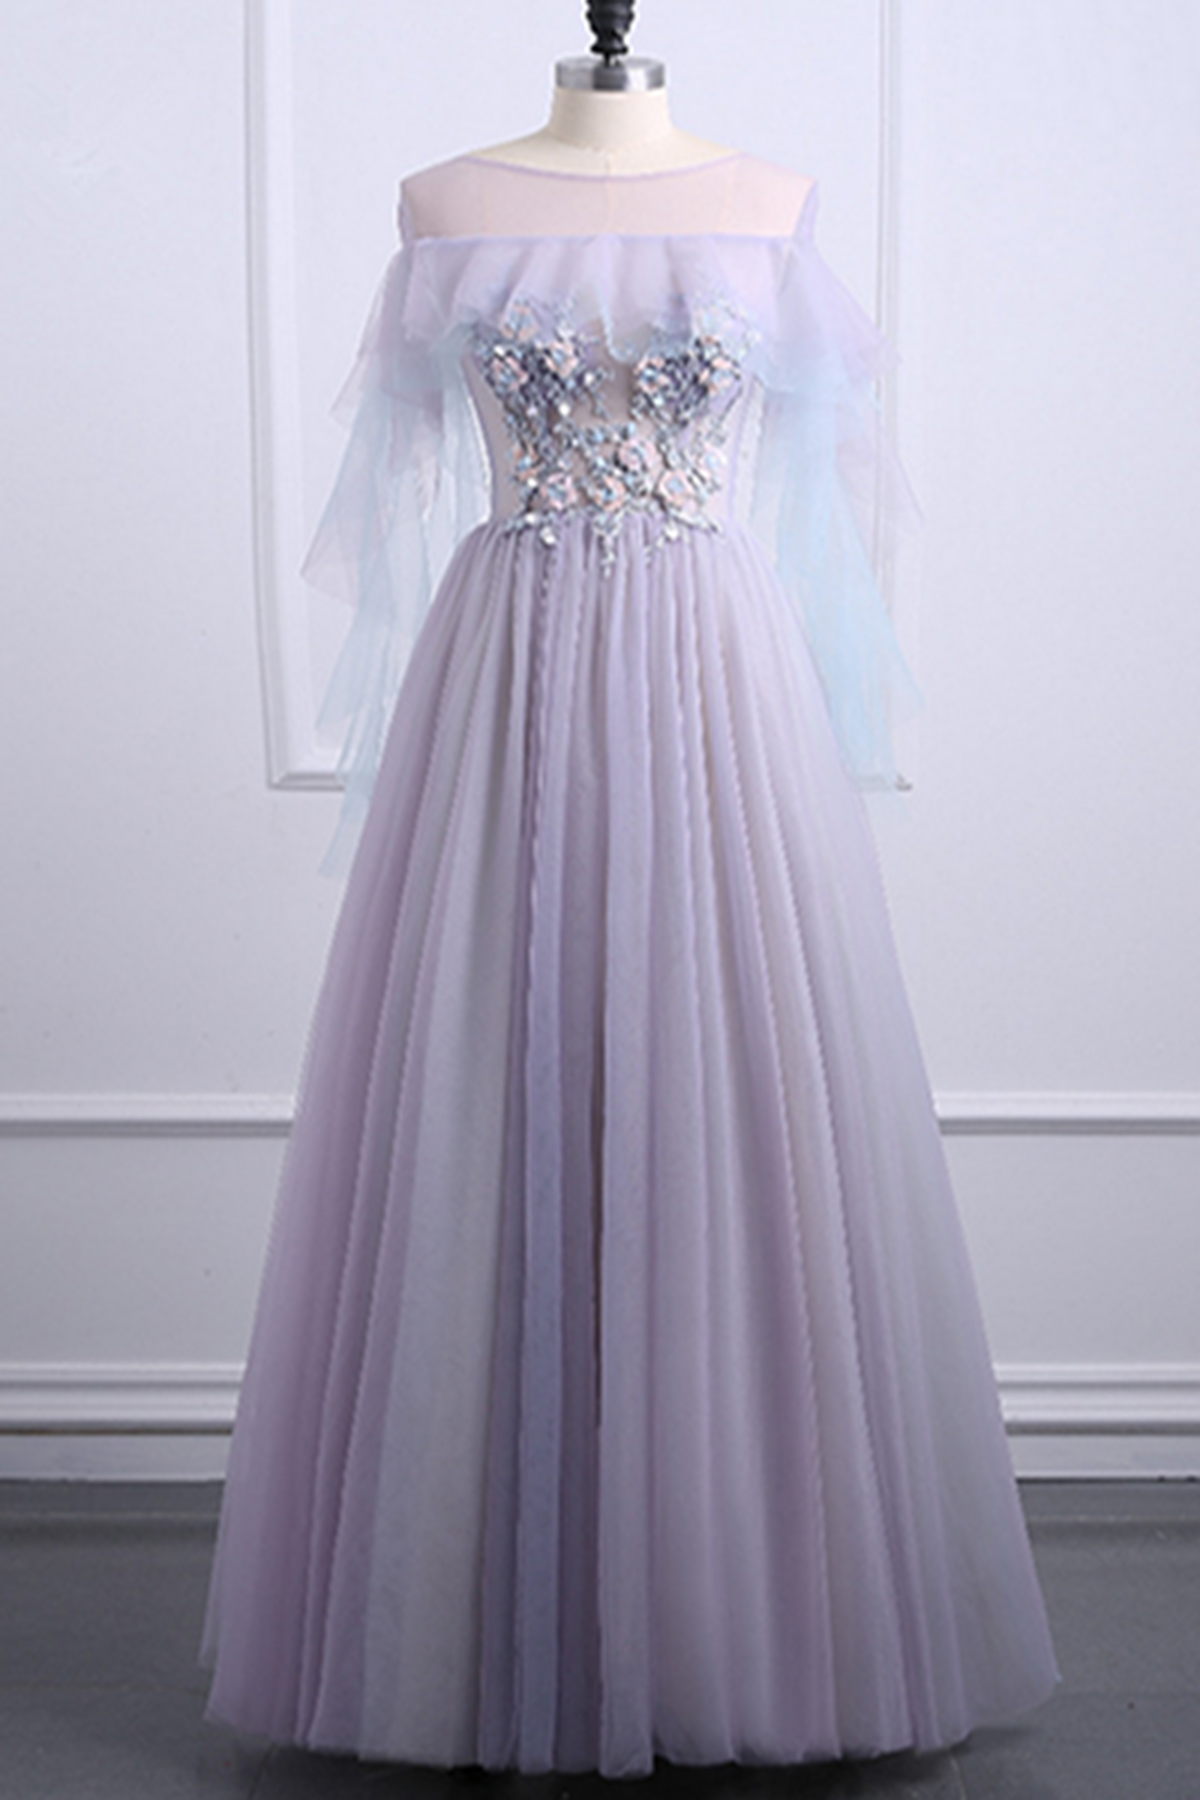 Cute light purple tulle scoop neck long A-line plus size senior prom dress  from Girlsprom